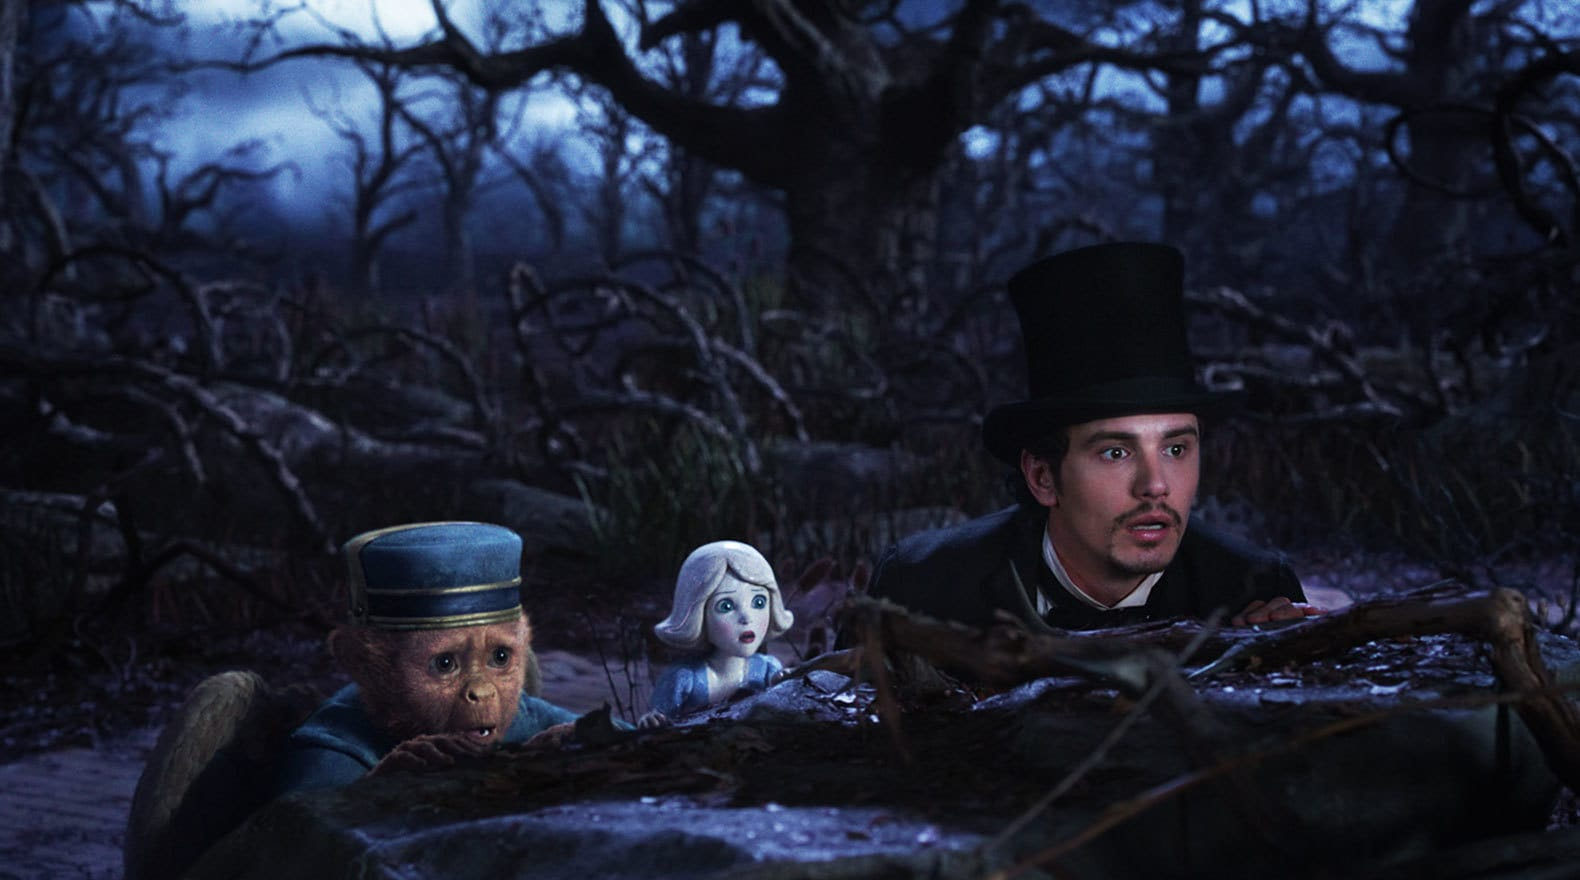 """Zach Braff, James Franco, and Joey King in """"Oz the Great and Powerful"""""""